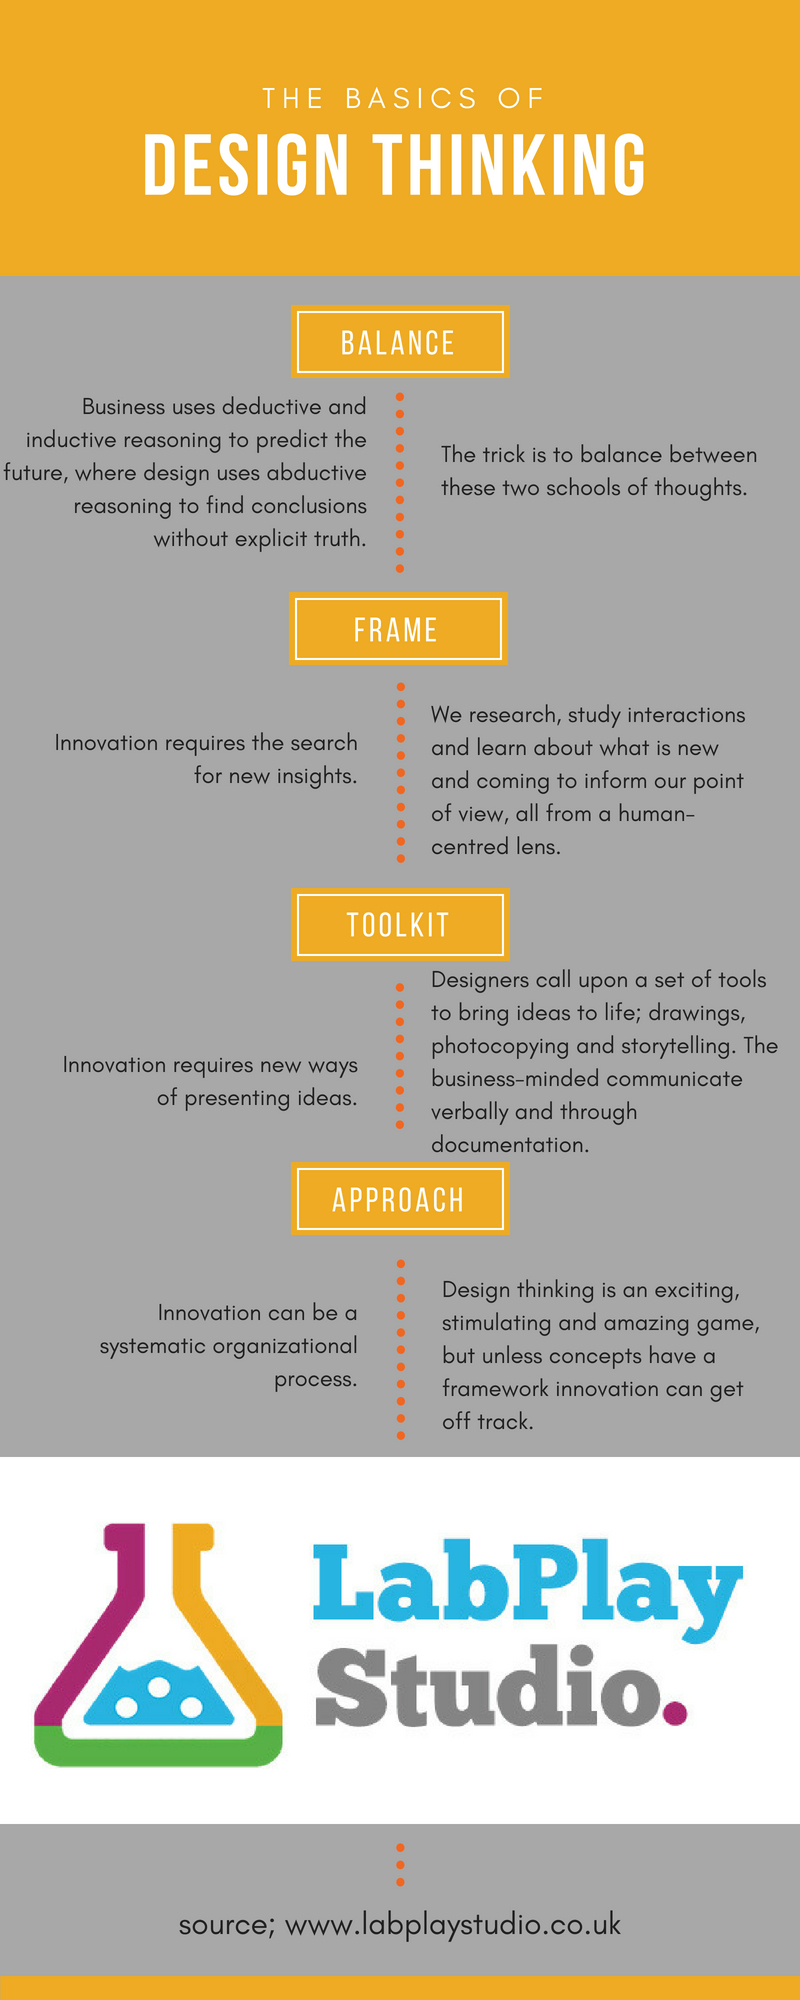 LabPlay Studio Design Thinking Infographic: Explains design thinking methods and the approach to Service Design. Labplay Studio a design thinking and research company in Birmingham. Lab Play Studio